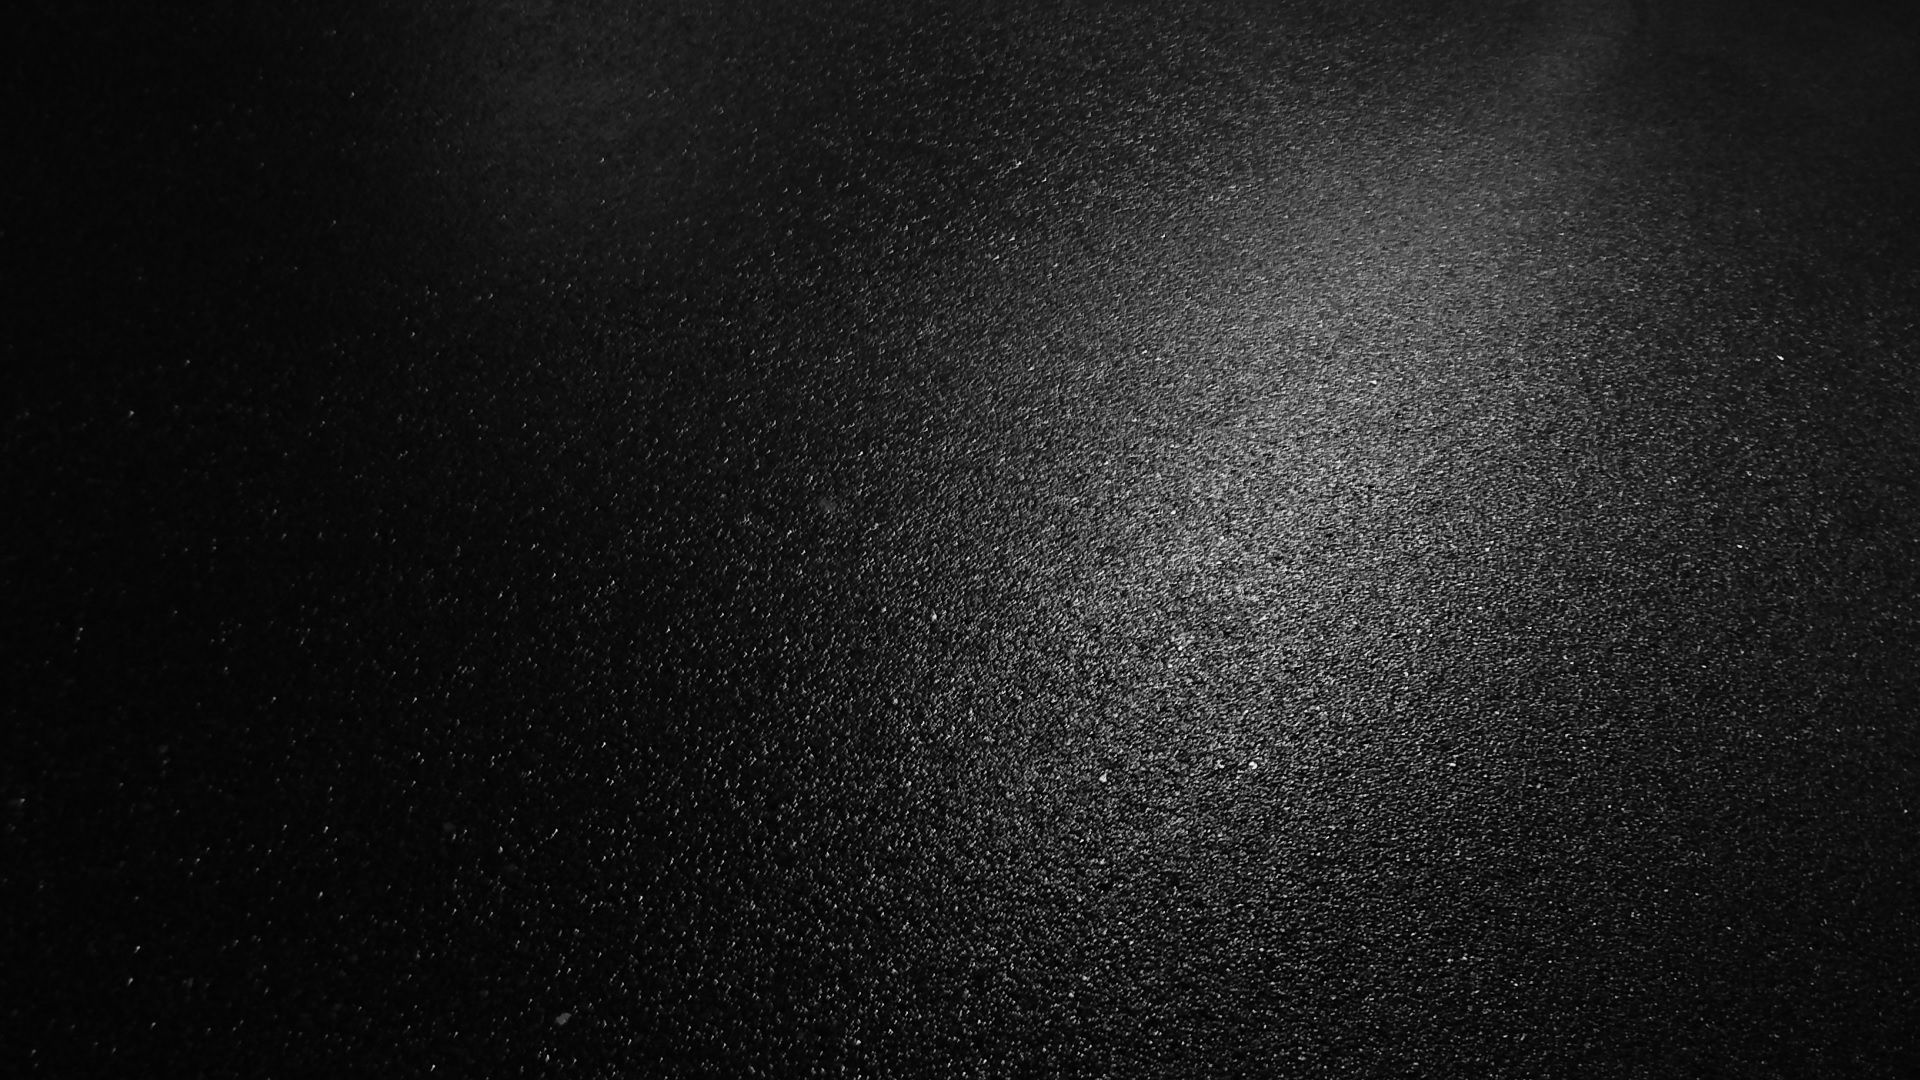 General 1920x1080 Texture Dark Black Fabric Textured Black Texture Background Black Textured Wallpaper Dark Black Wallpaper